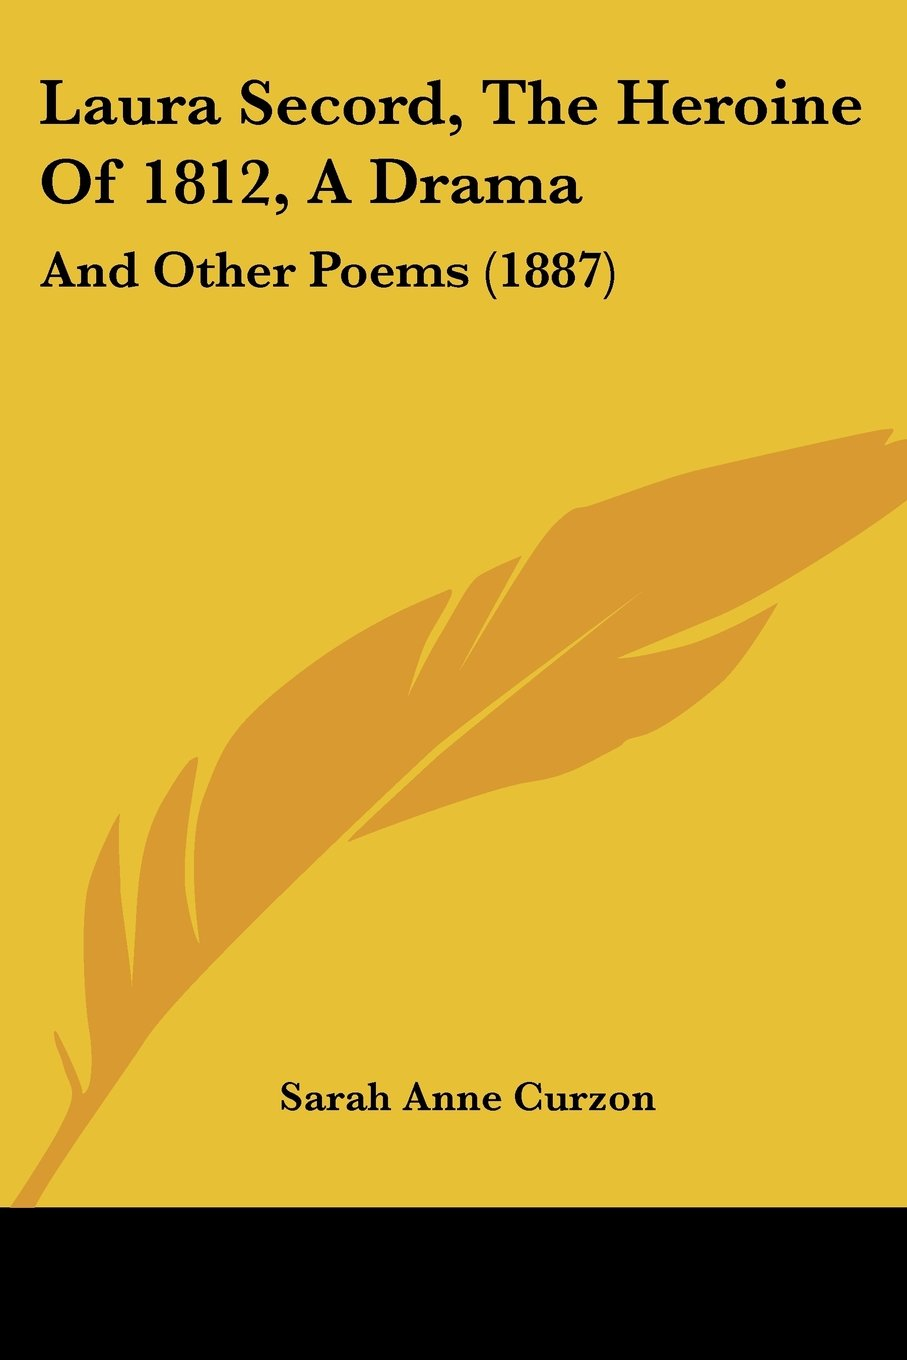 A Drama and Other Poems